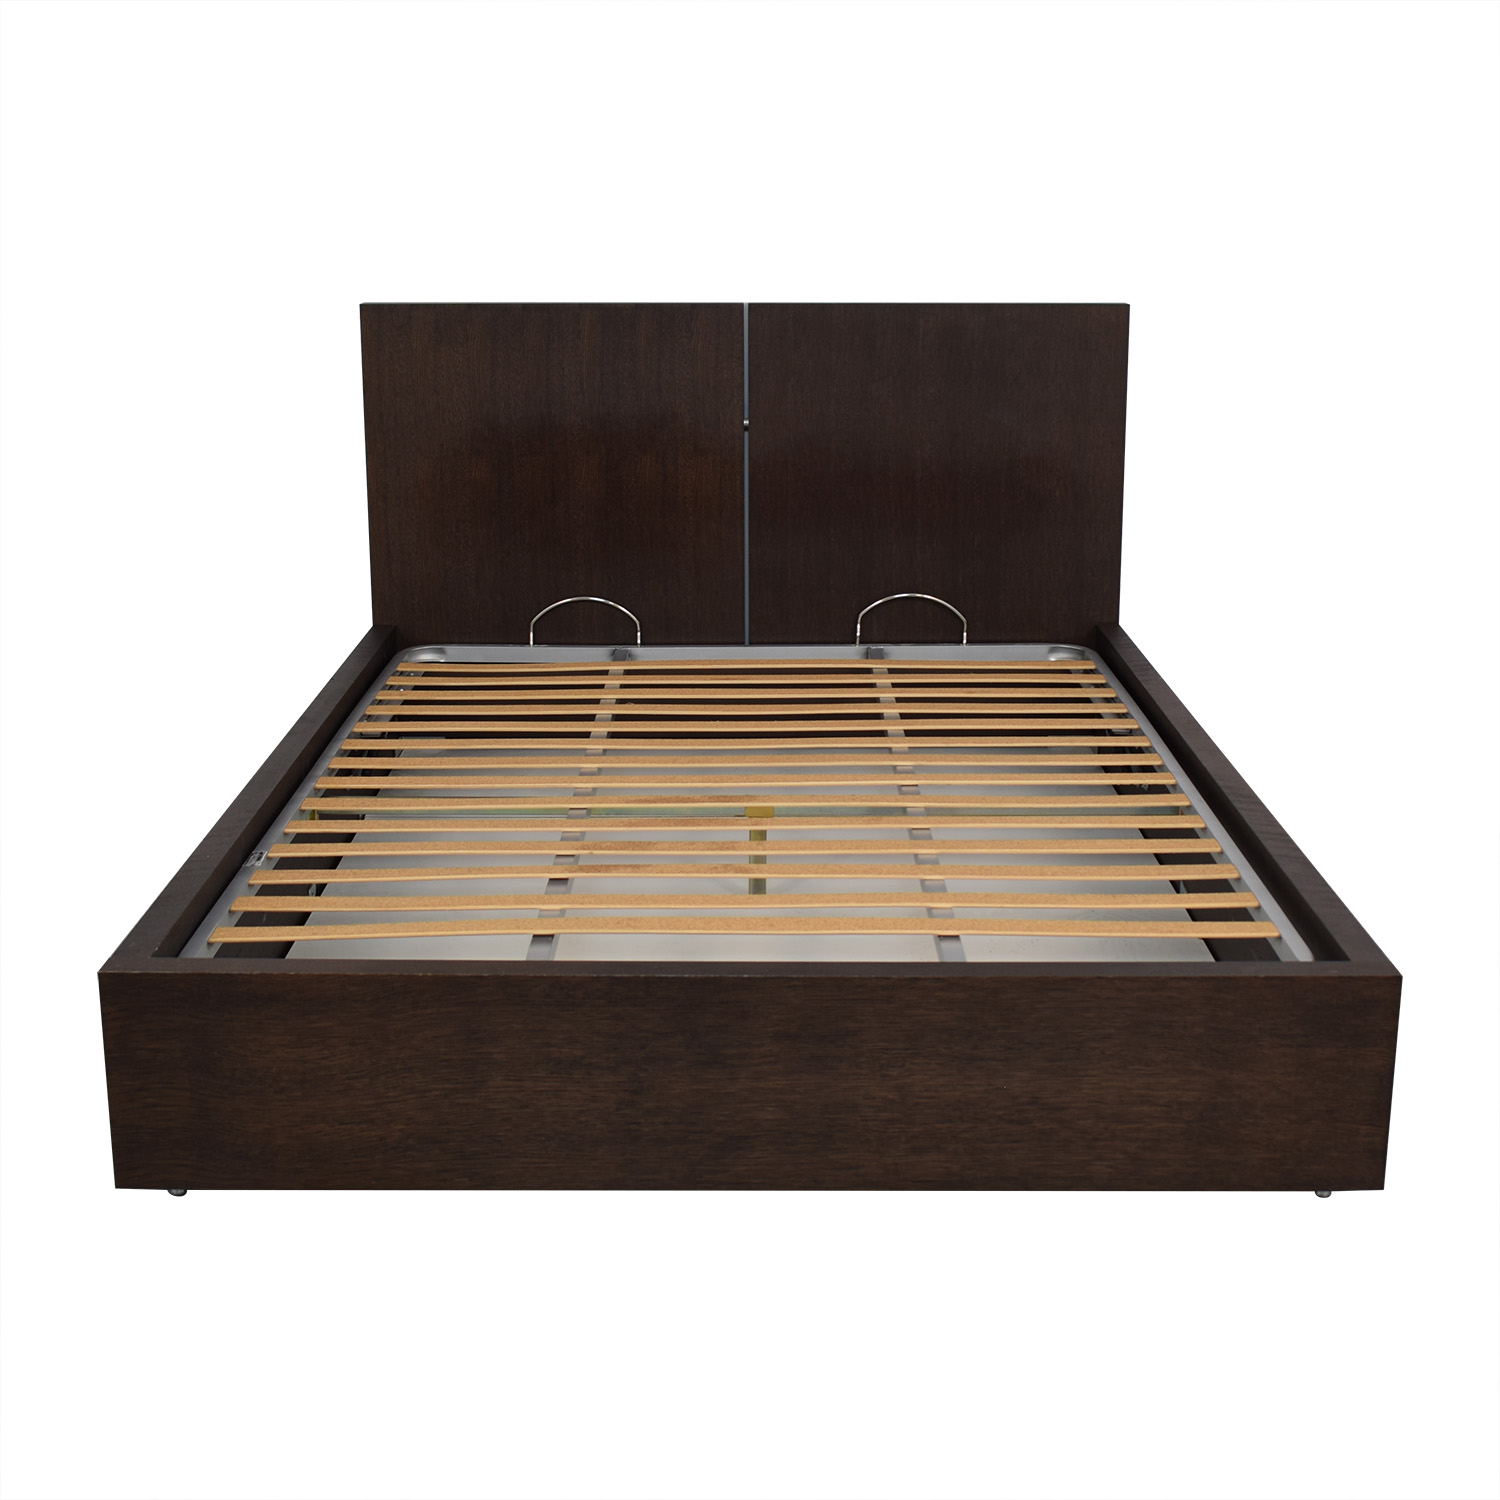 West Elm West Elm Queen Platform Bed for sale